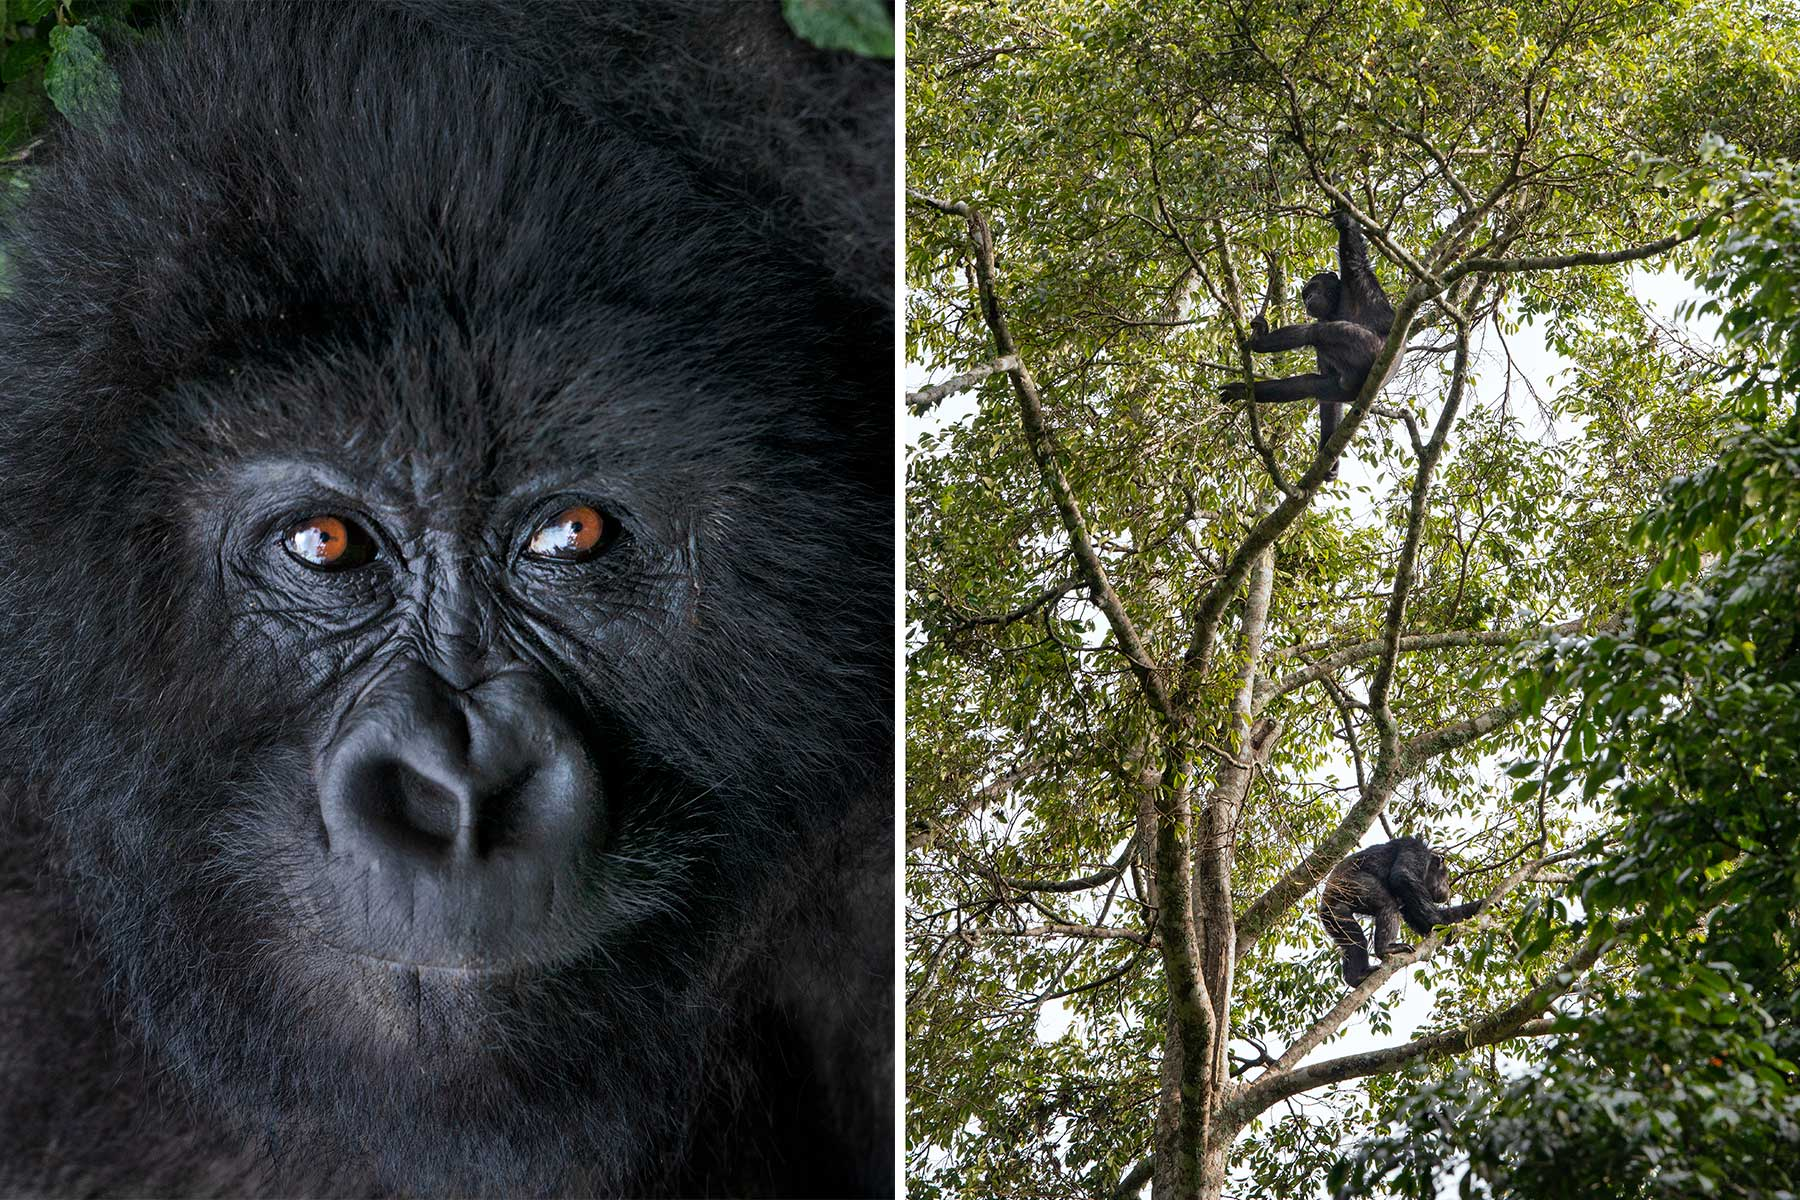 Primates in Rwanda, including a gorilla and chimpanzees